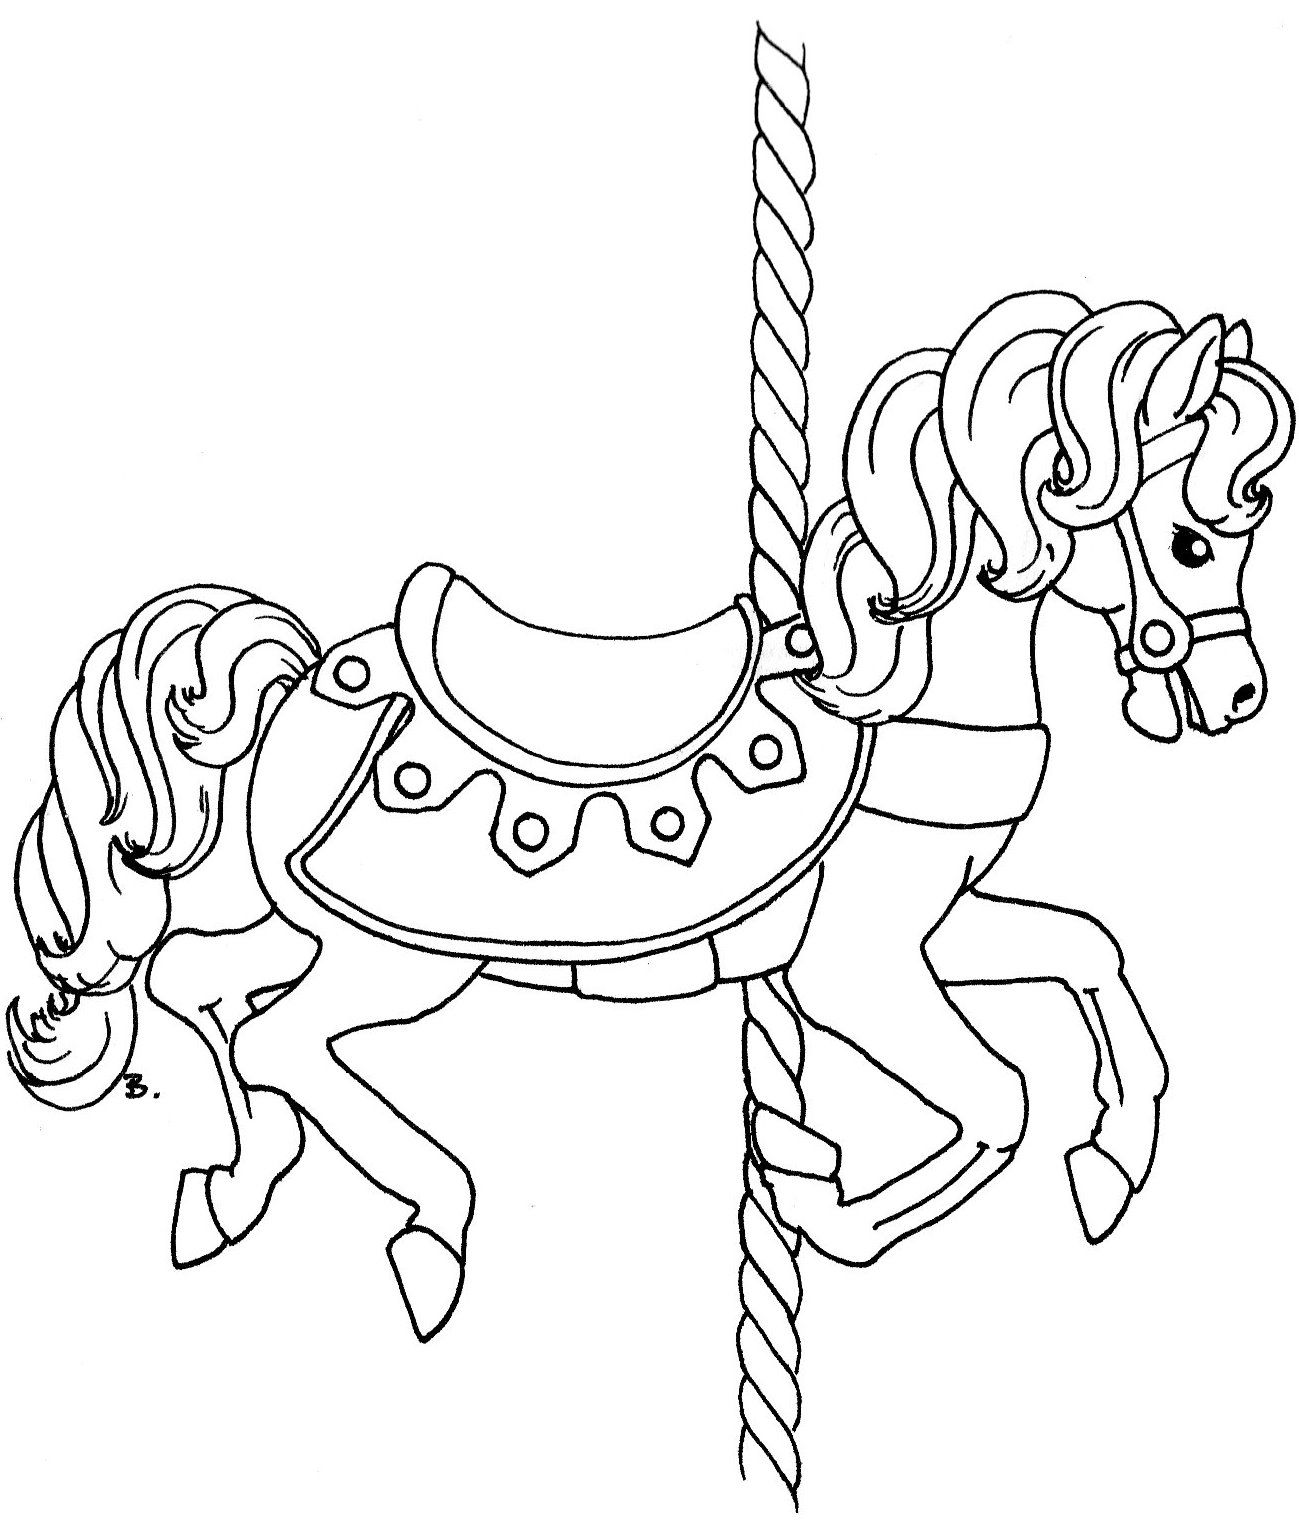 Gallery For gt Carousel Horses Drawings